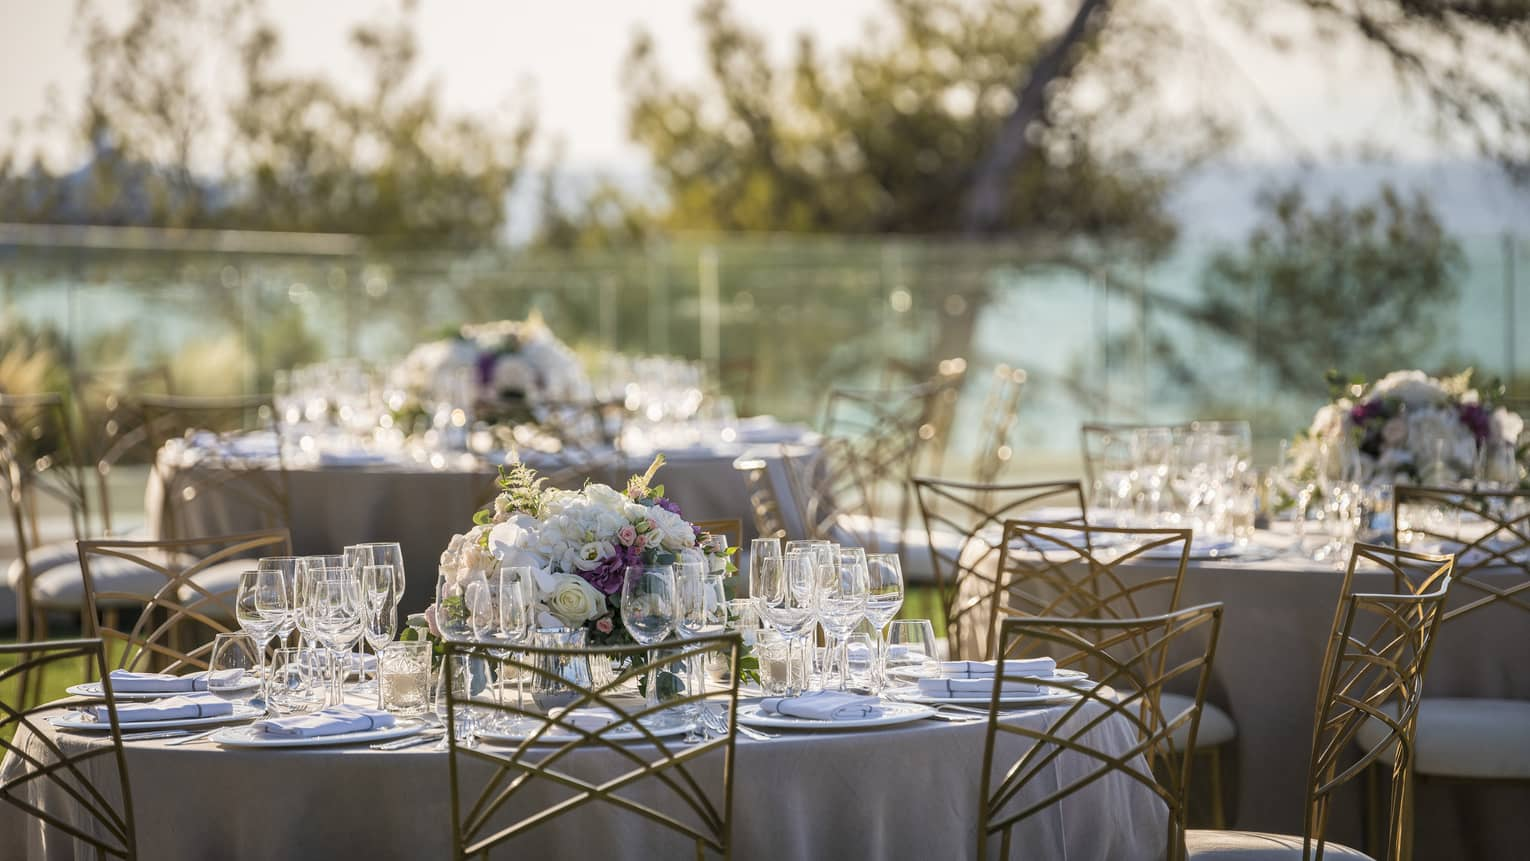 Romantic outdoor table setting with flowers, wine glasses and white linens overlooking trees and ocean